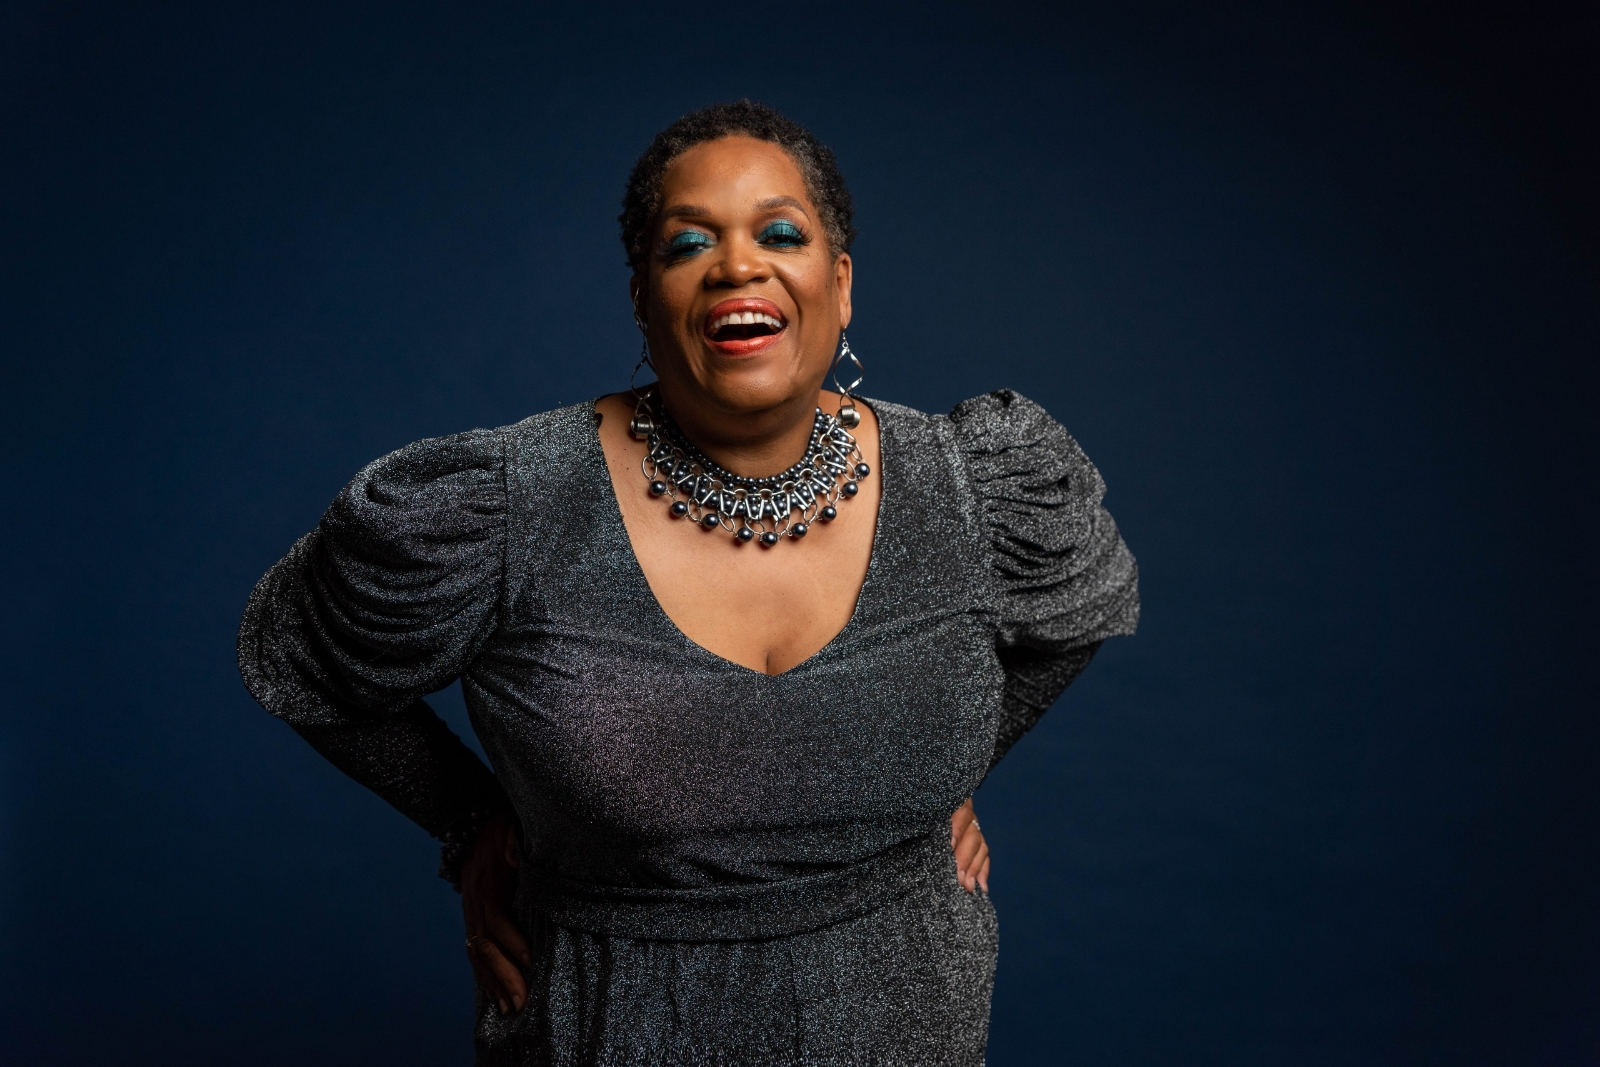 Anita Jackson, Excellence in the Arts